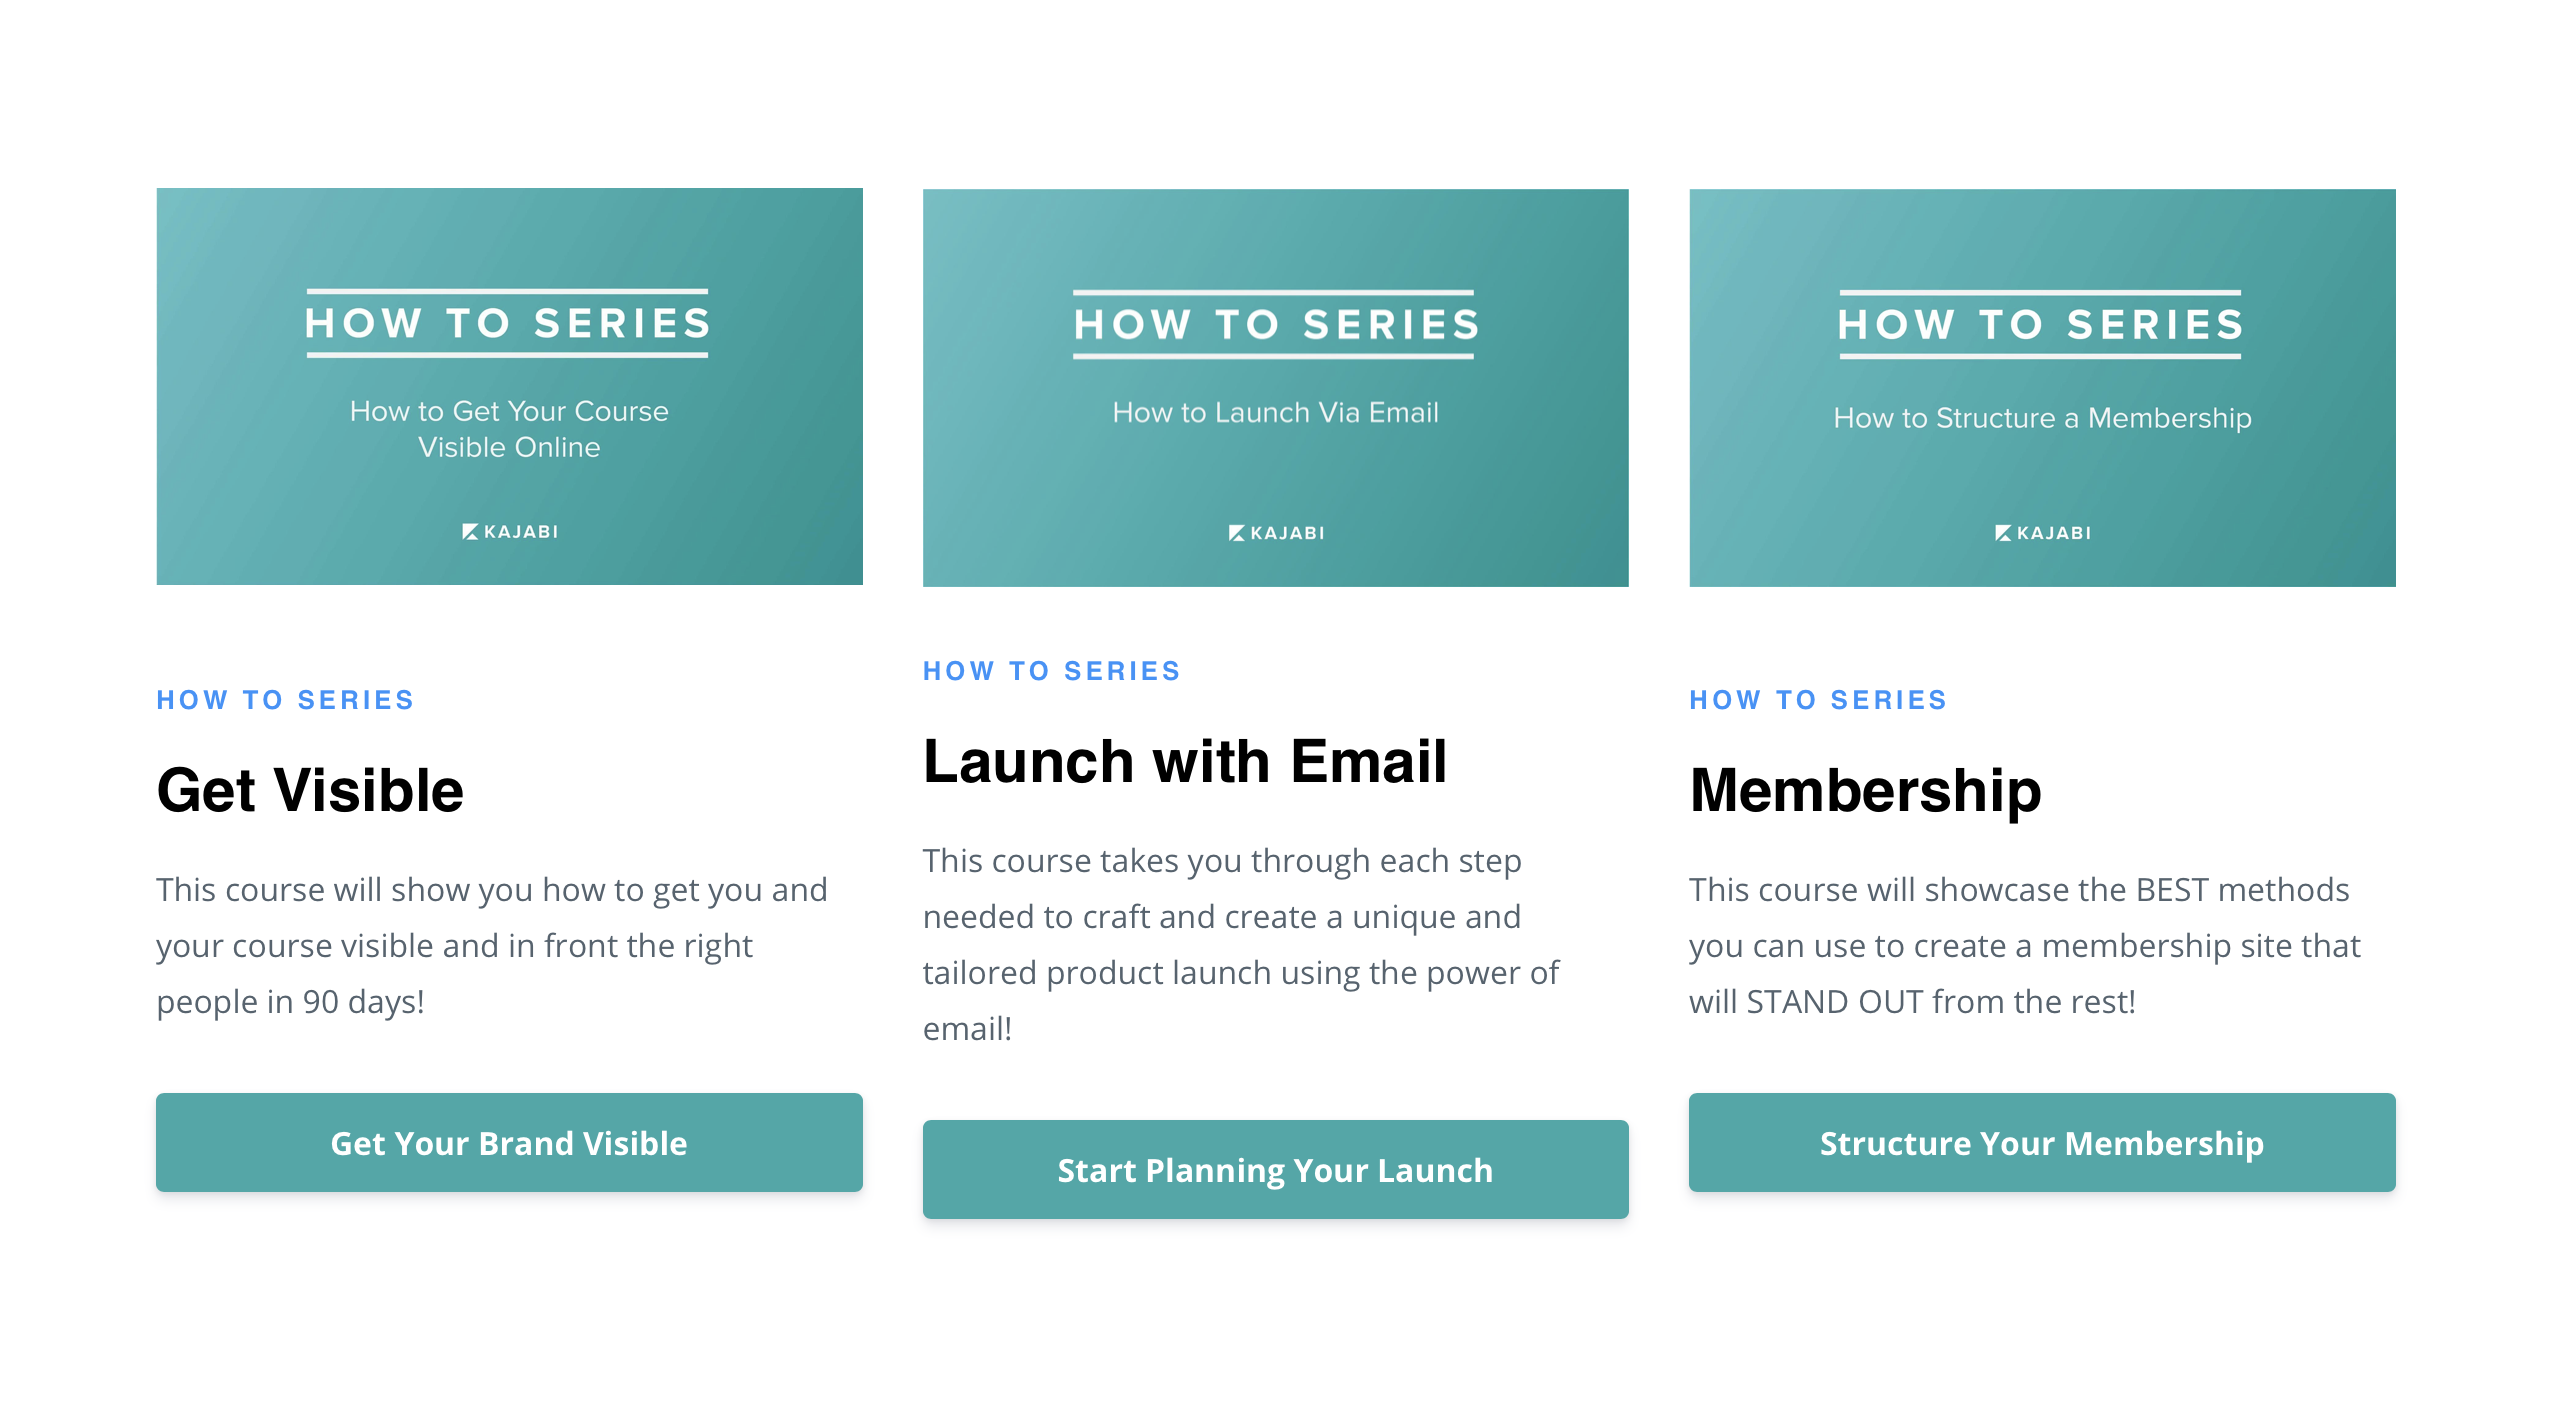 Kajabi University course selection - how to get visible, how to launch with email, and how to structure a membership site